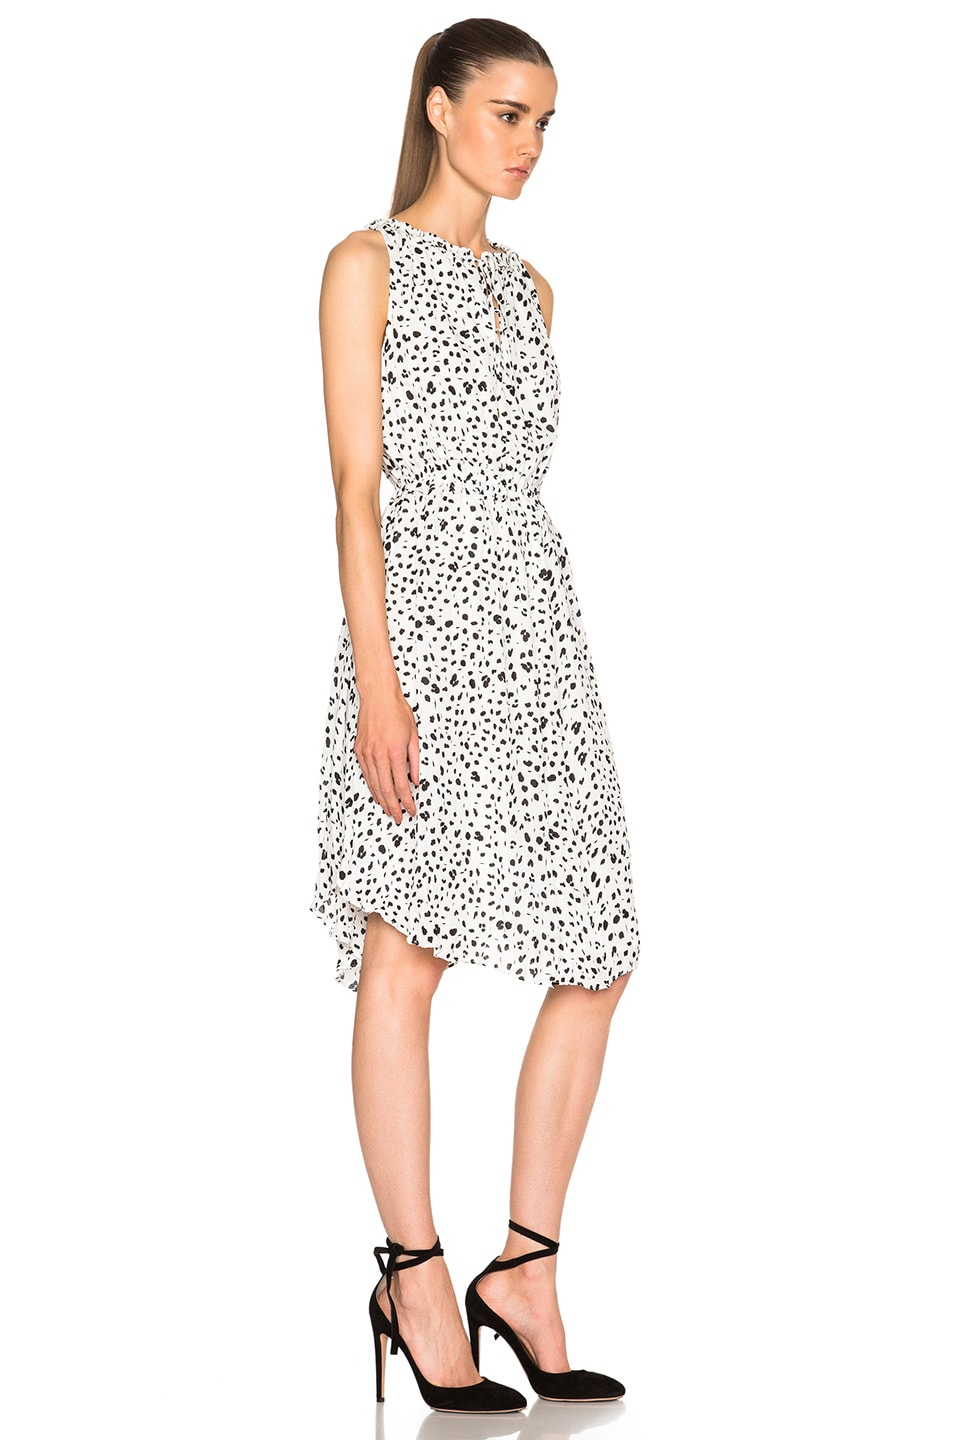 Image 3 of DEREK LAM 10 CROSBY Gathered Dress in White & Black